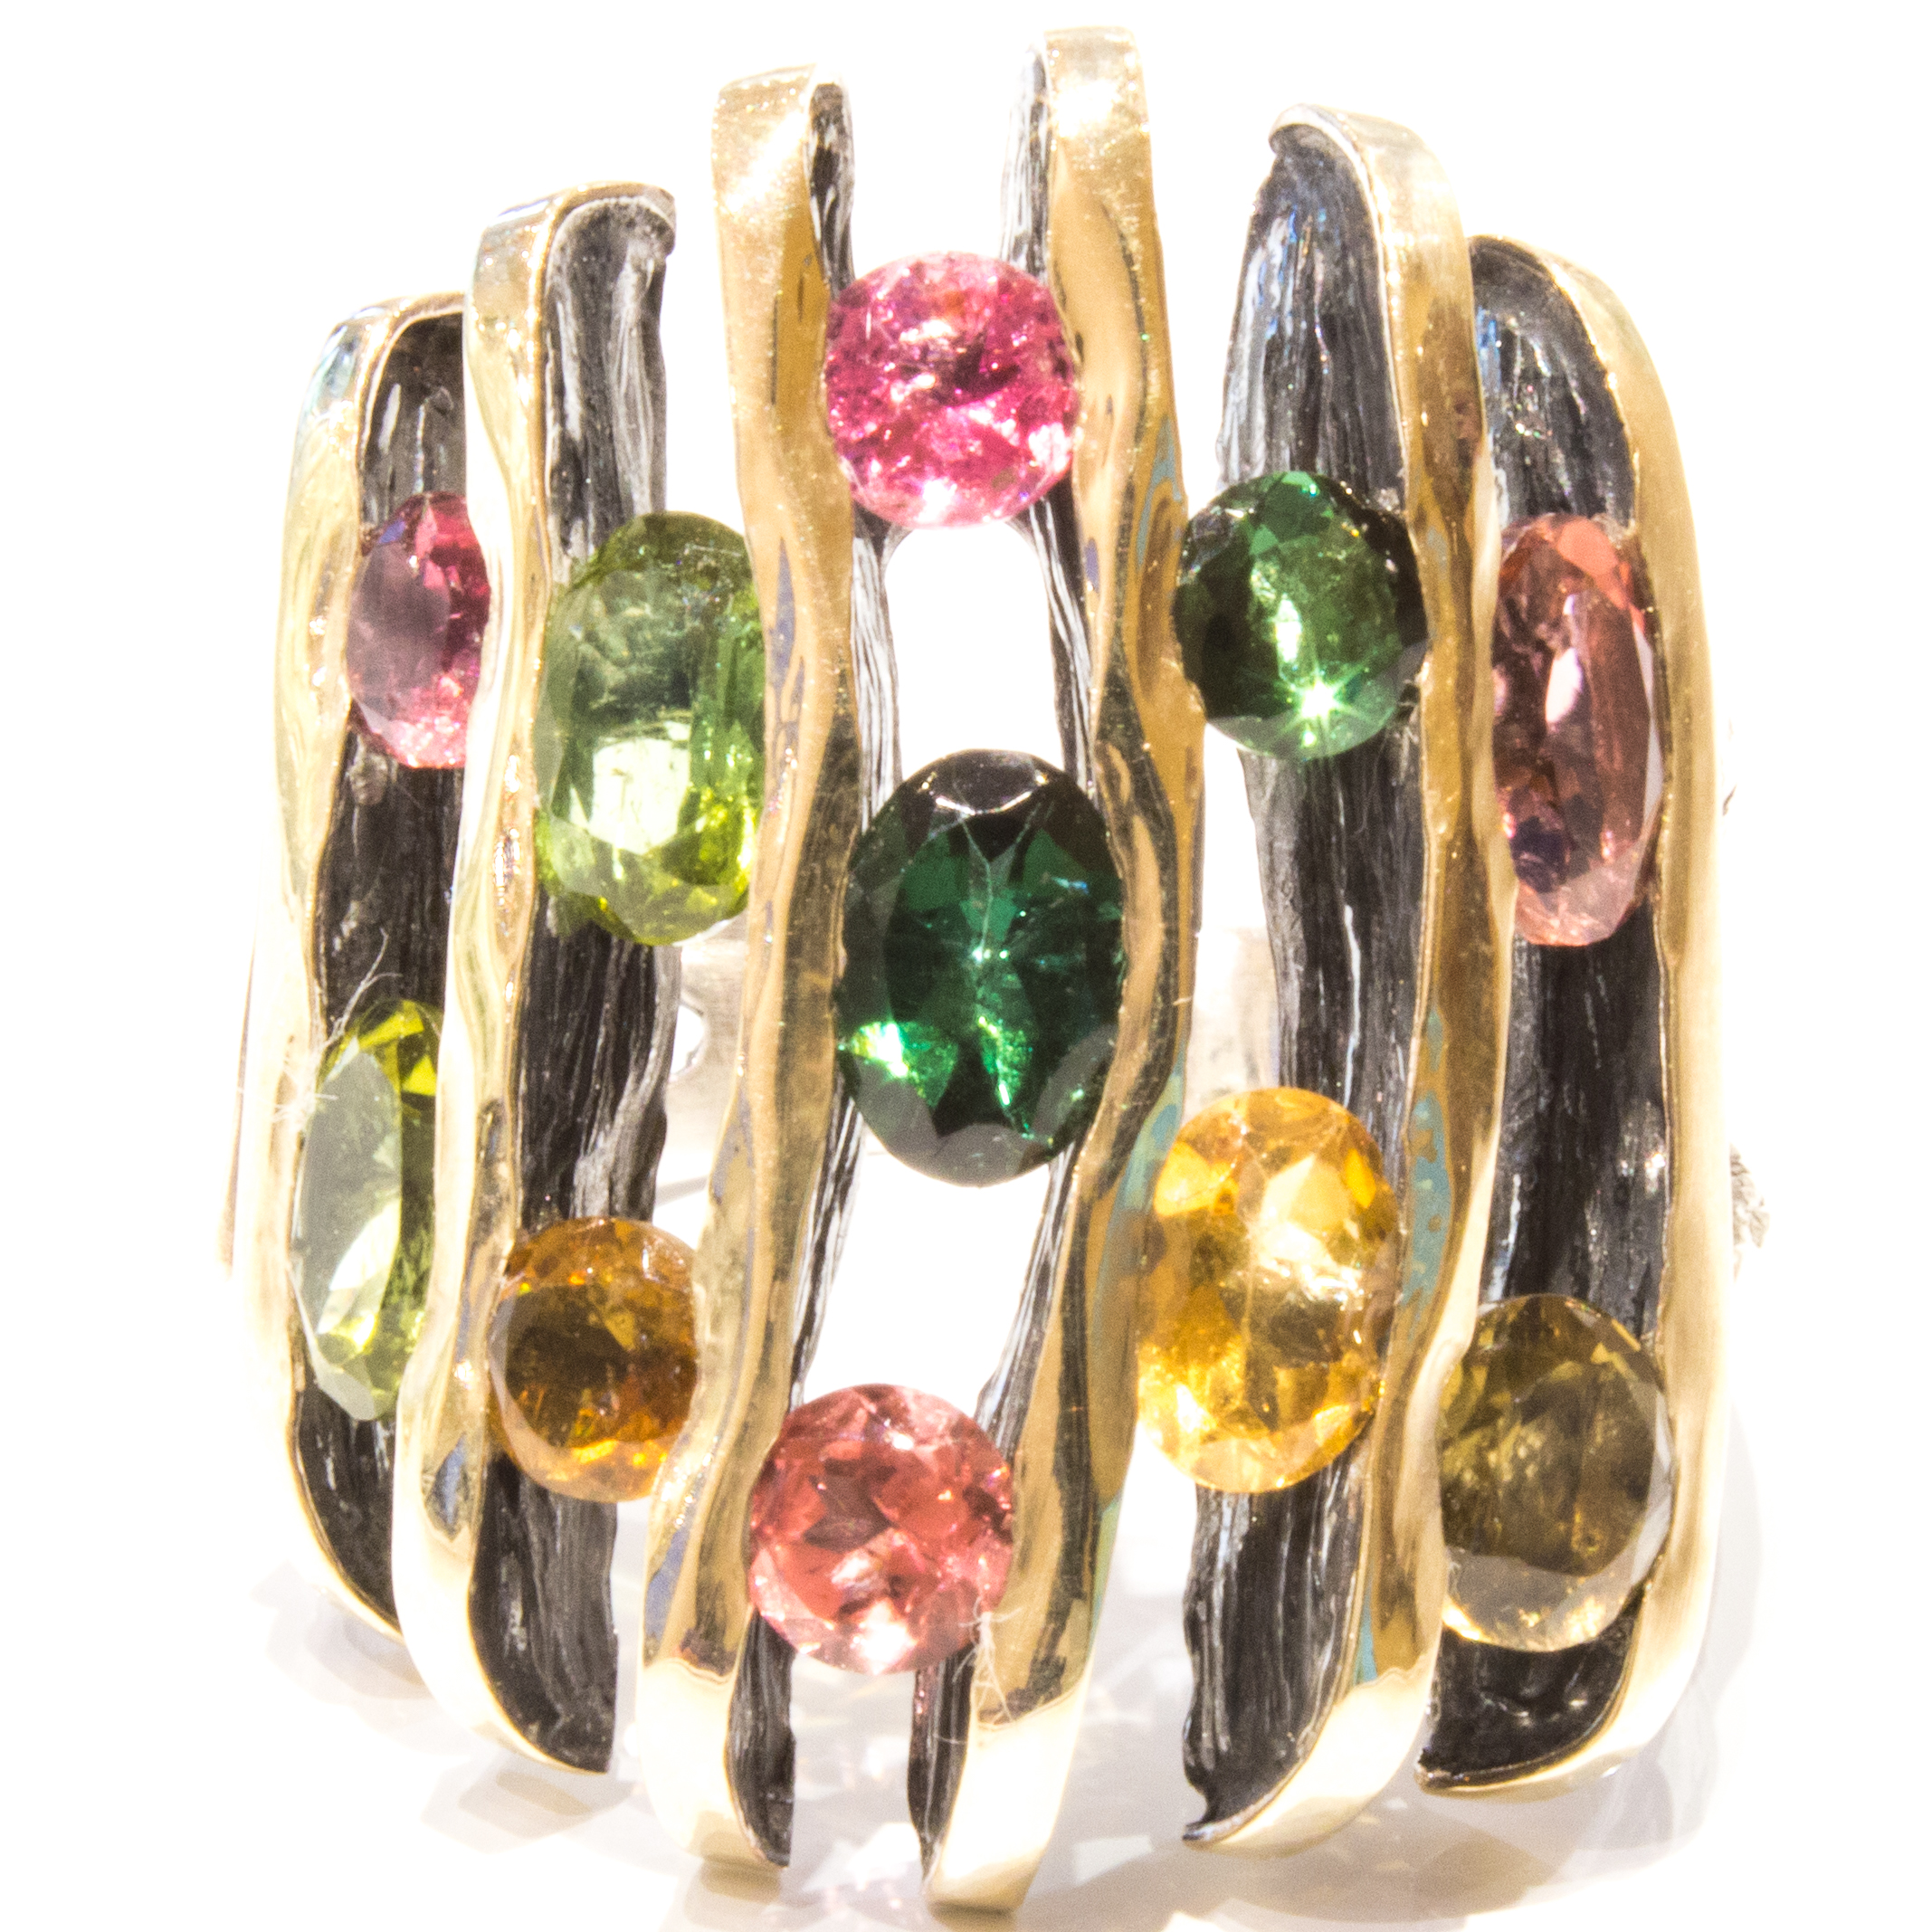 Handmade Gold and Silver Ring With Tourmalines